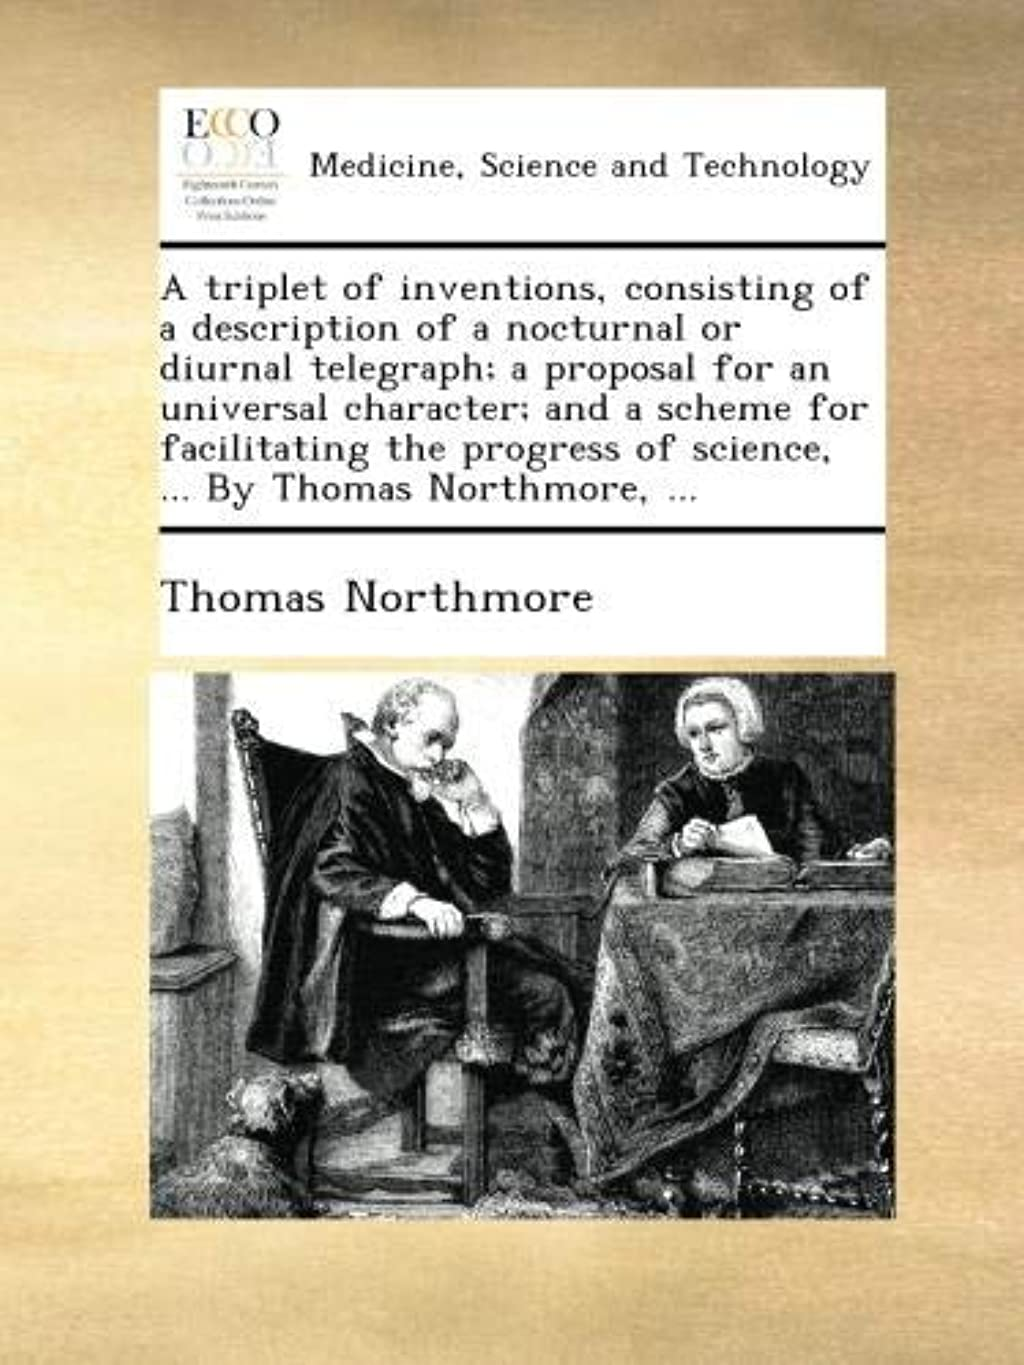 証書思い出おとうさんA triplet of inventions, consisting of a description of a nocturnal or diurnal telegraph; a proposal for an universal character; and a scheme for facilitating the progress of science, ... By Thomas Northmore, ...